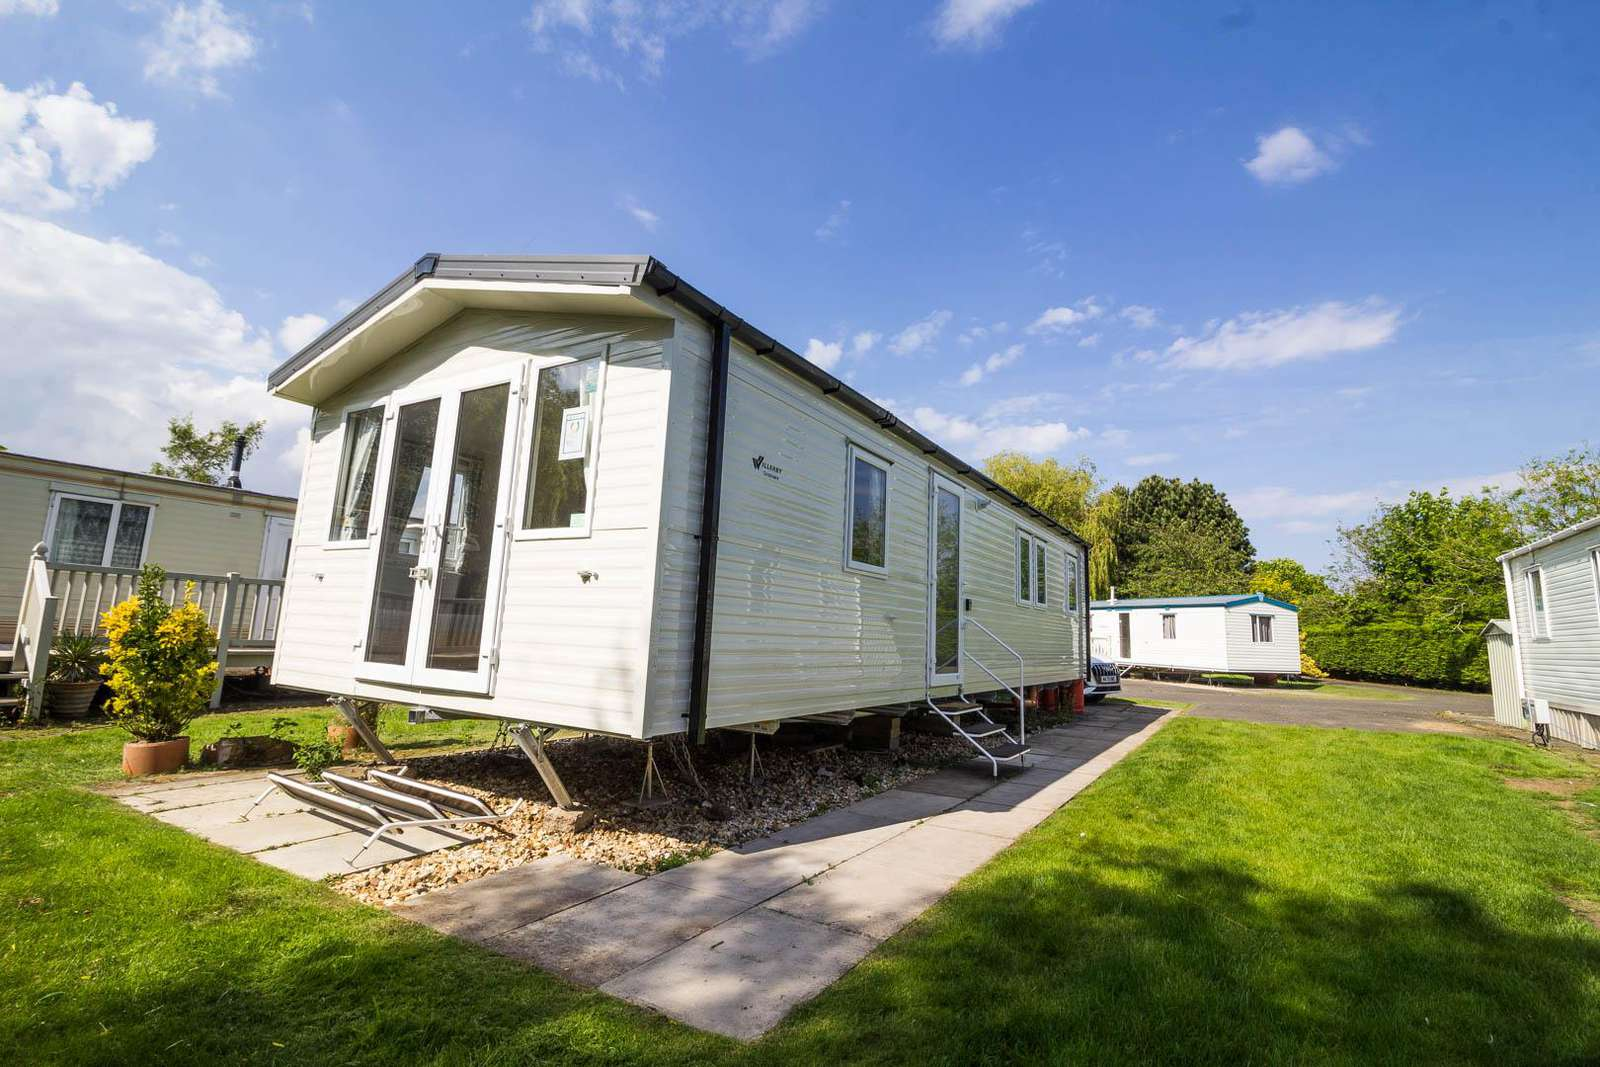 33050M – Morningside area, 3 bed, 8 berth caravan with D/G & C/H. Diamond rated. - property